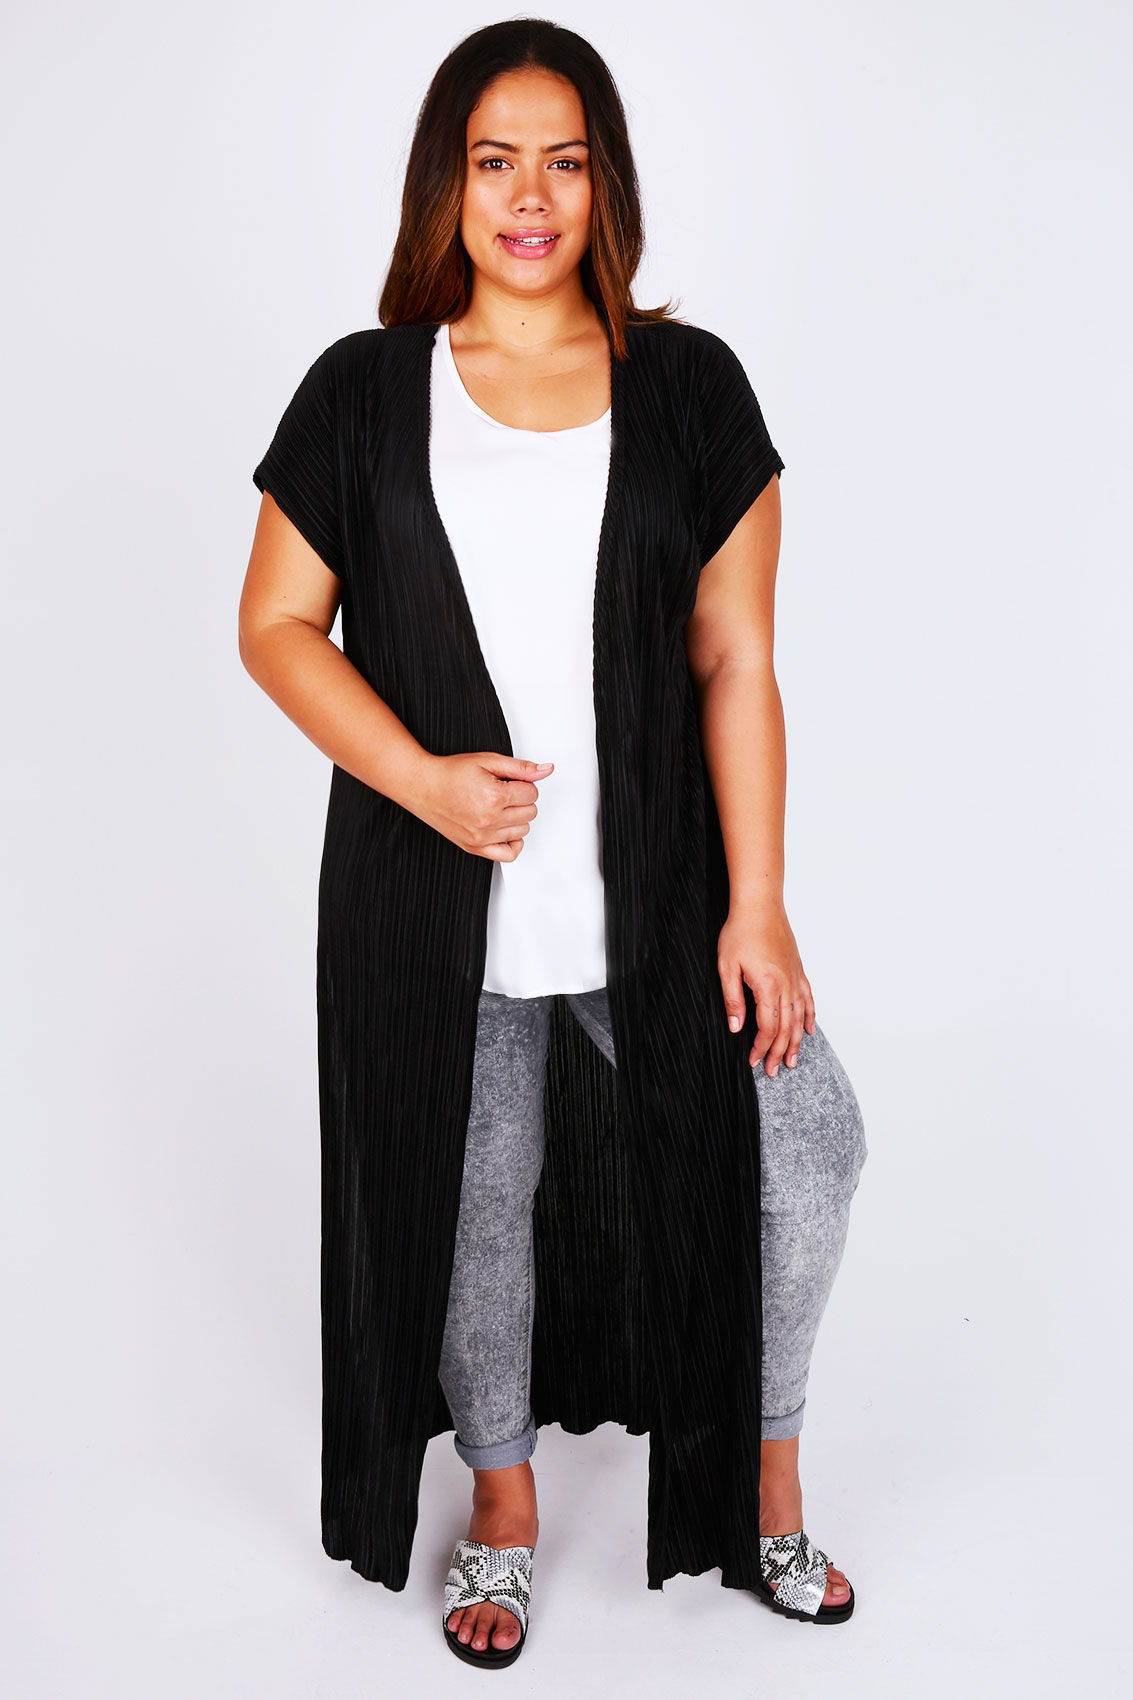 Belted Asymmetric Hem Black Maxi Dress and Cardigan with cheap wholesale price, buy Belted Asymmetric Hem Black Maxi Dress and Cardigan at atrociouslf.gq!